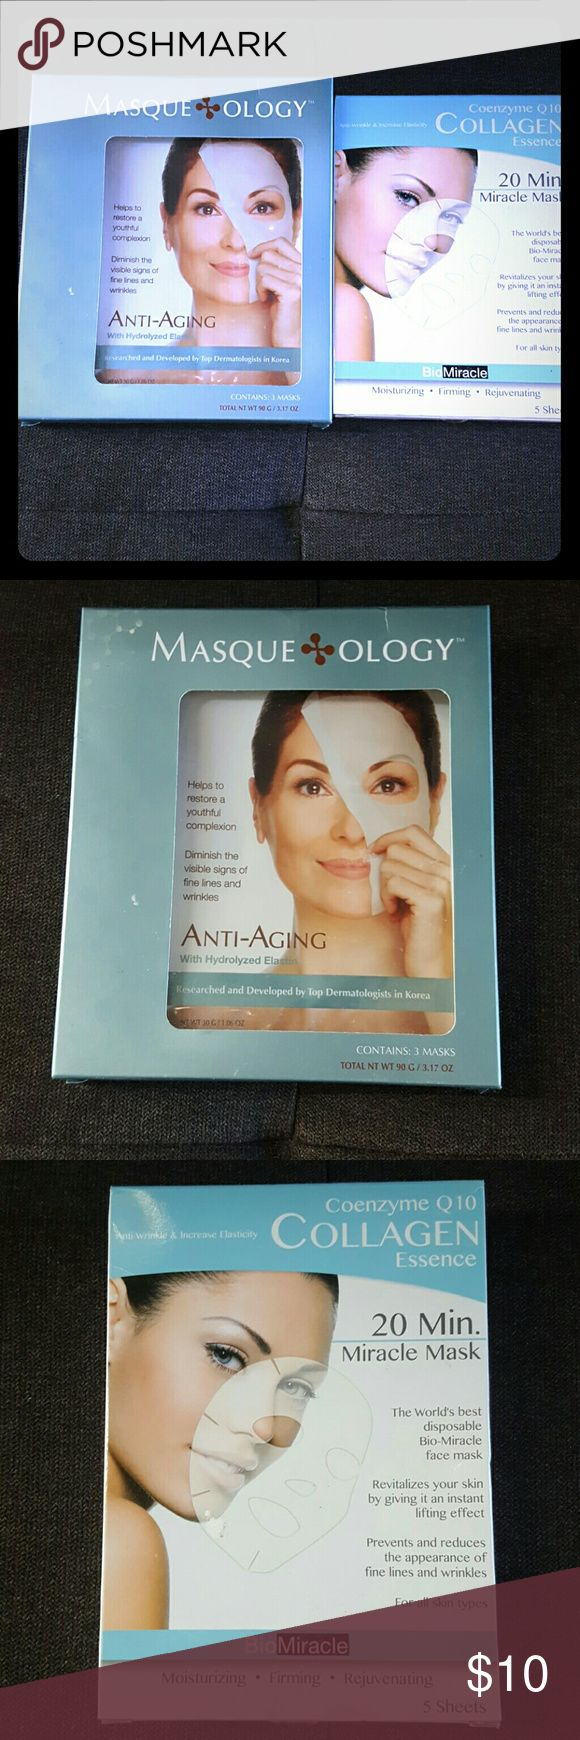 NWT! Anti-aging Beauty Masques: FWP! This listing is for one package of Masqueology Anti-aging facial masks with hydrolyzed elastin. The package contains three masks. Original price $10, but paid $5.99.  Also offered in this listing: BioMiracle Coenzyme Collagen Essence facial masks. Includes five masks. Original price is $10, paid $5.99.  Both NWT and never opened.   These both are FREE with any purchase over $20 or $10 for both of them. Bio Miracle Makeup